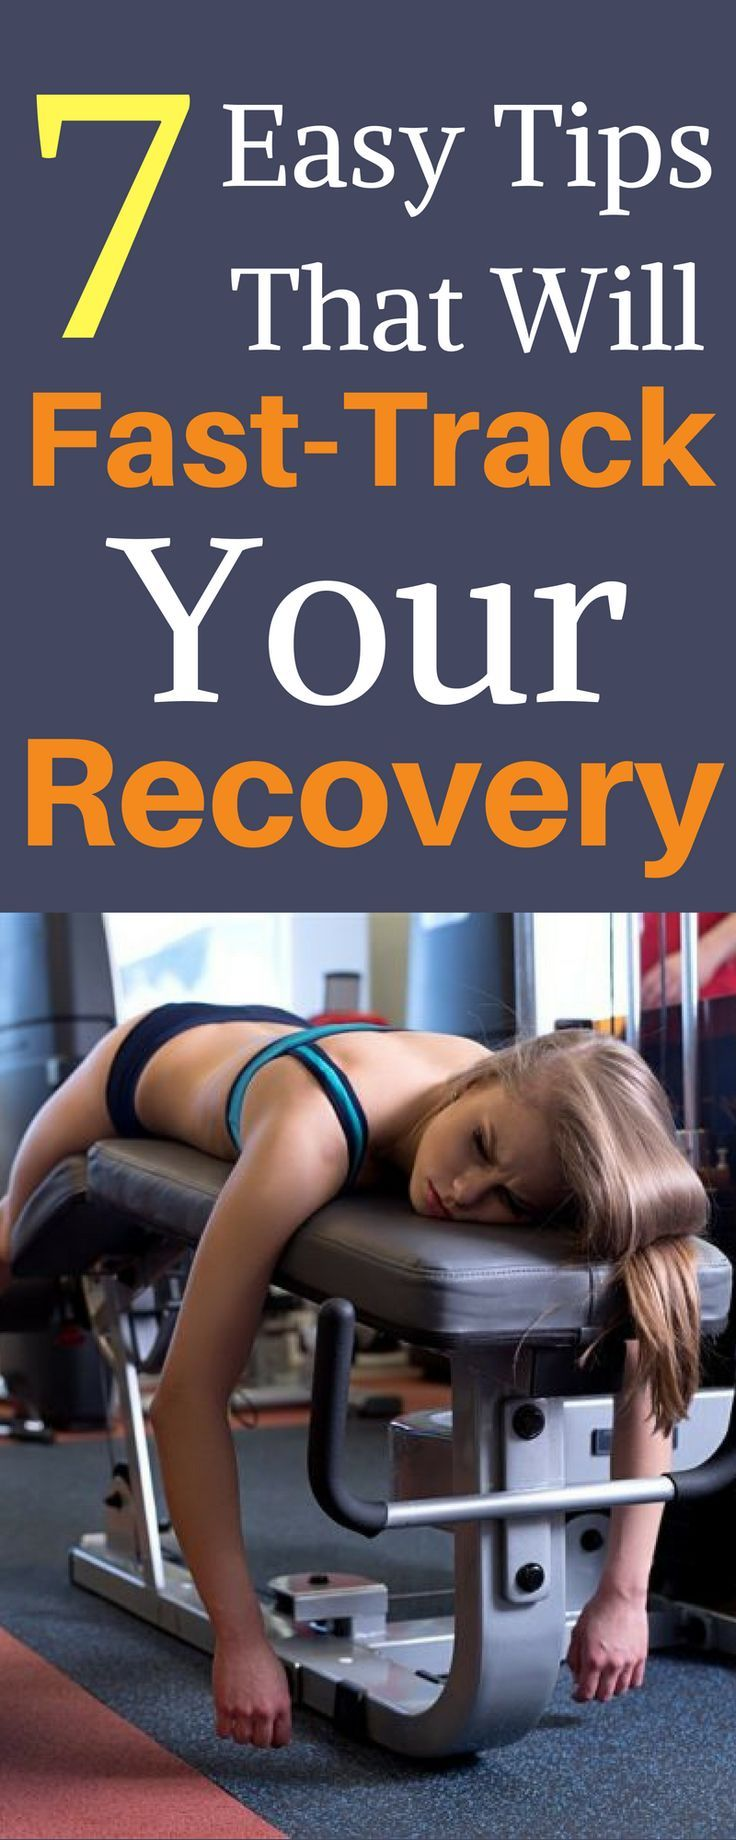 7 Easy Tips That Will Fast-Track Your Recovery. #fitness #fitnesstips #recoverytips #foodforfitness